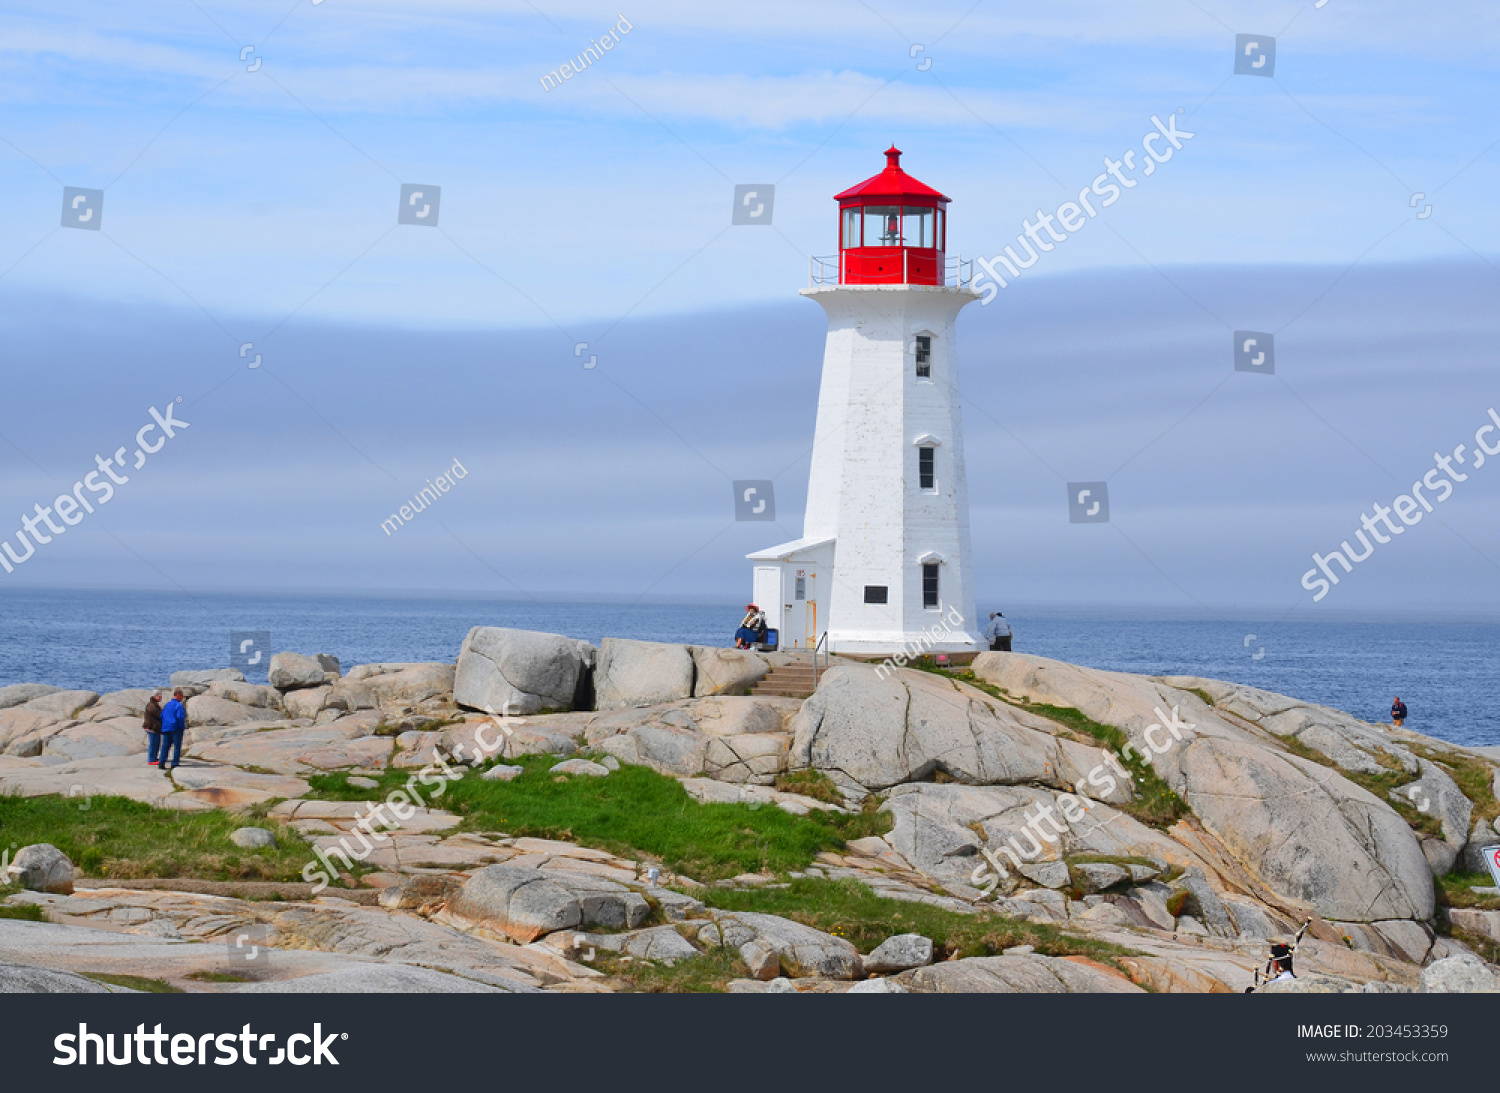 Peggys Cove Nova Scotia June 6 Stock Photo (Edit Now) 203453359